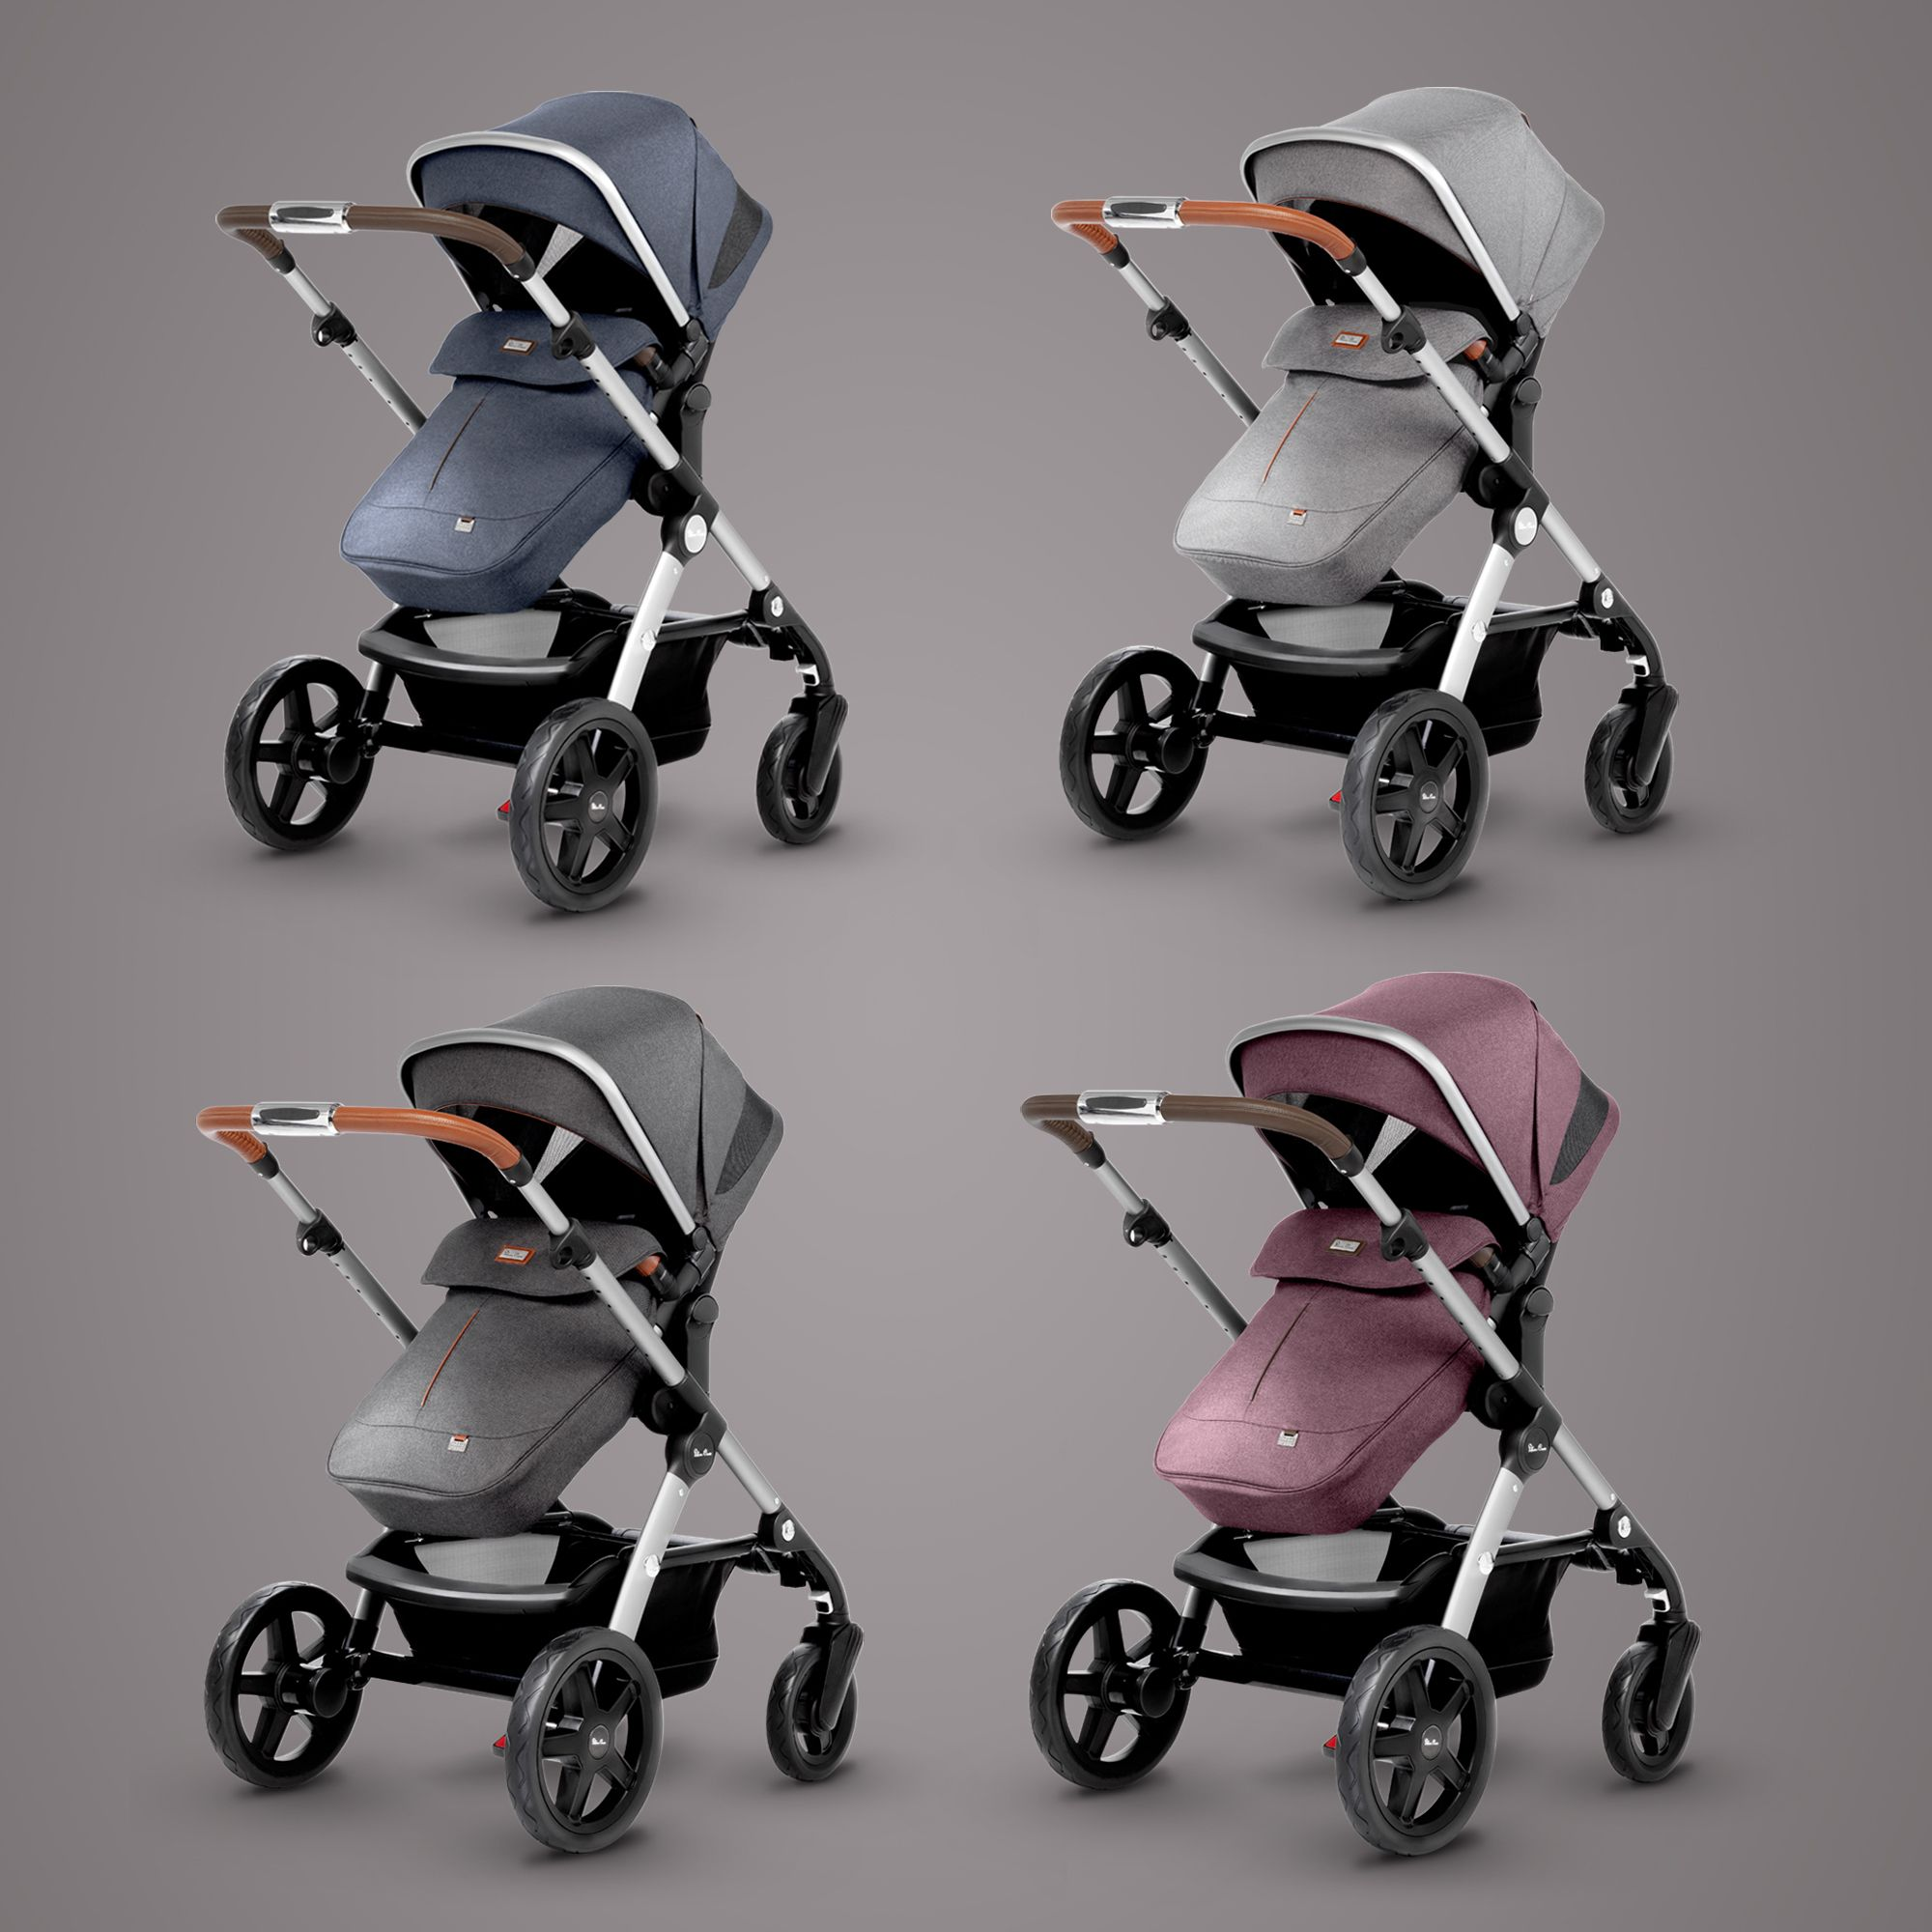 Silver Cross UK provides beautiful prams pushchairs buggies and strollers for babies and toddlers You can also find gorgeous nursery furniture sets